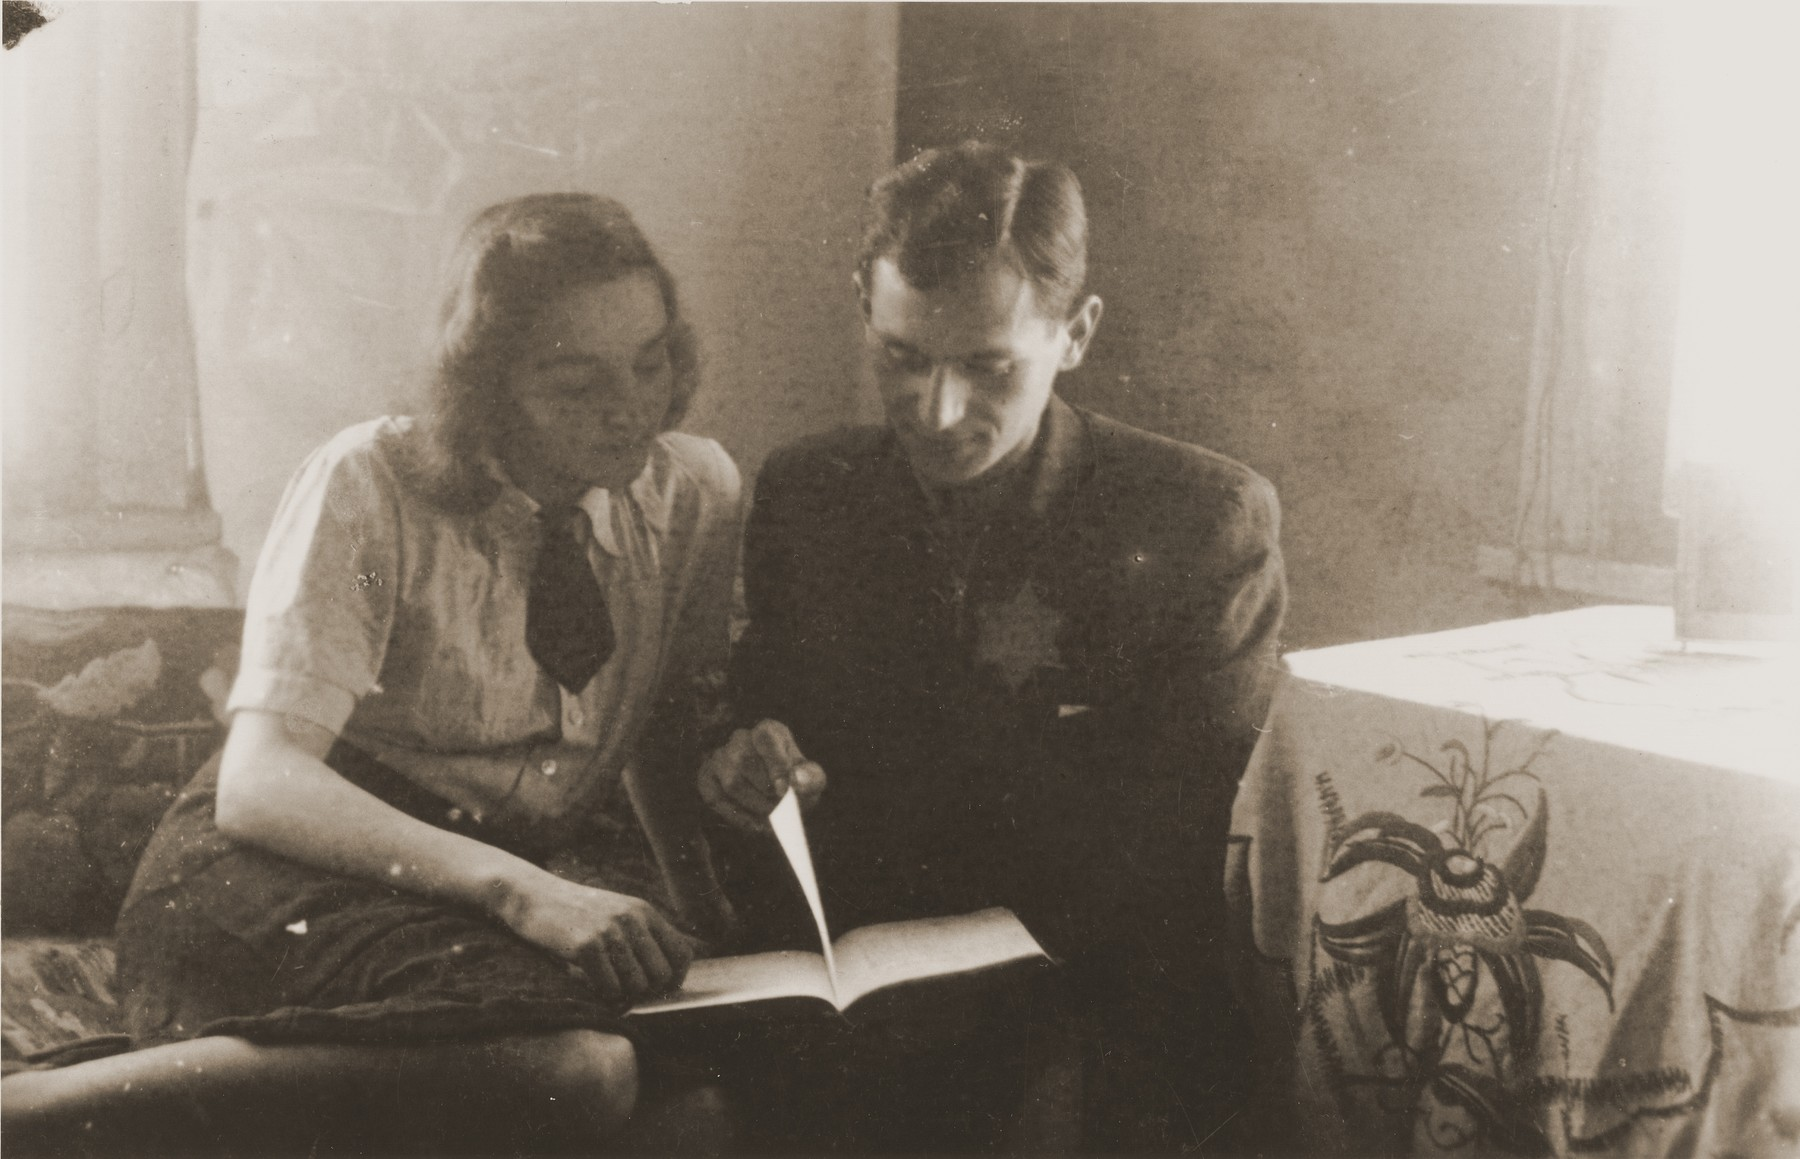 Ida Karnovski and her brother-in-law, Moshe Musel, read a letter from Pola (Karnovski) Musel (Ida's sister and Moshe's wife) in their room in the Kovno ghetto.  They received this letter one month after Pola escaped to the Aryan side.   Her rescuer, Mikolas Simalis, brought letters back and forth until the ghetto was sealed more tightly in March, 1944.  The photographer, David Ratner, was a friend and a member of the Communist underground.